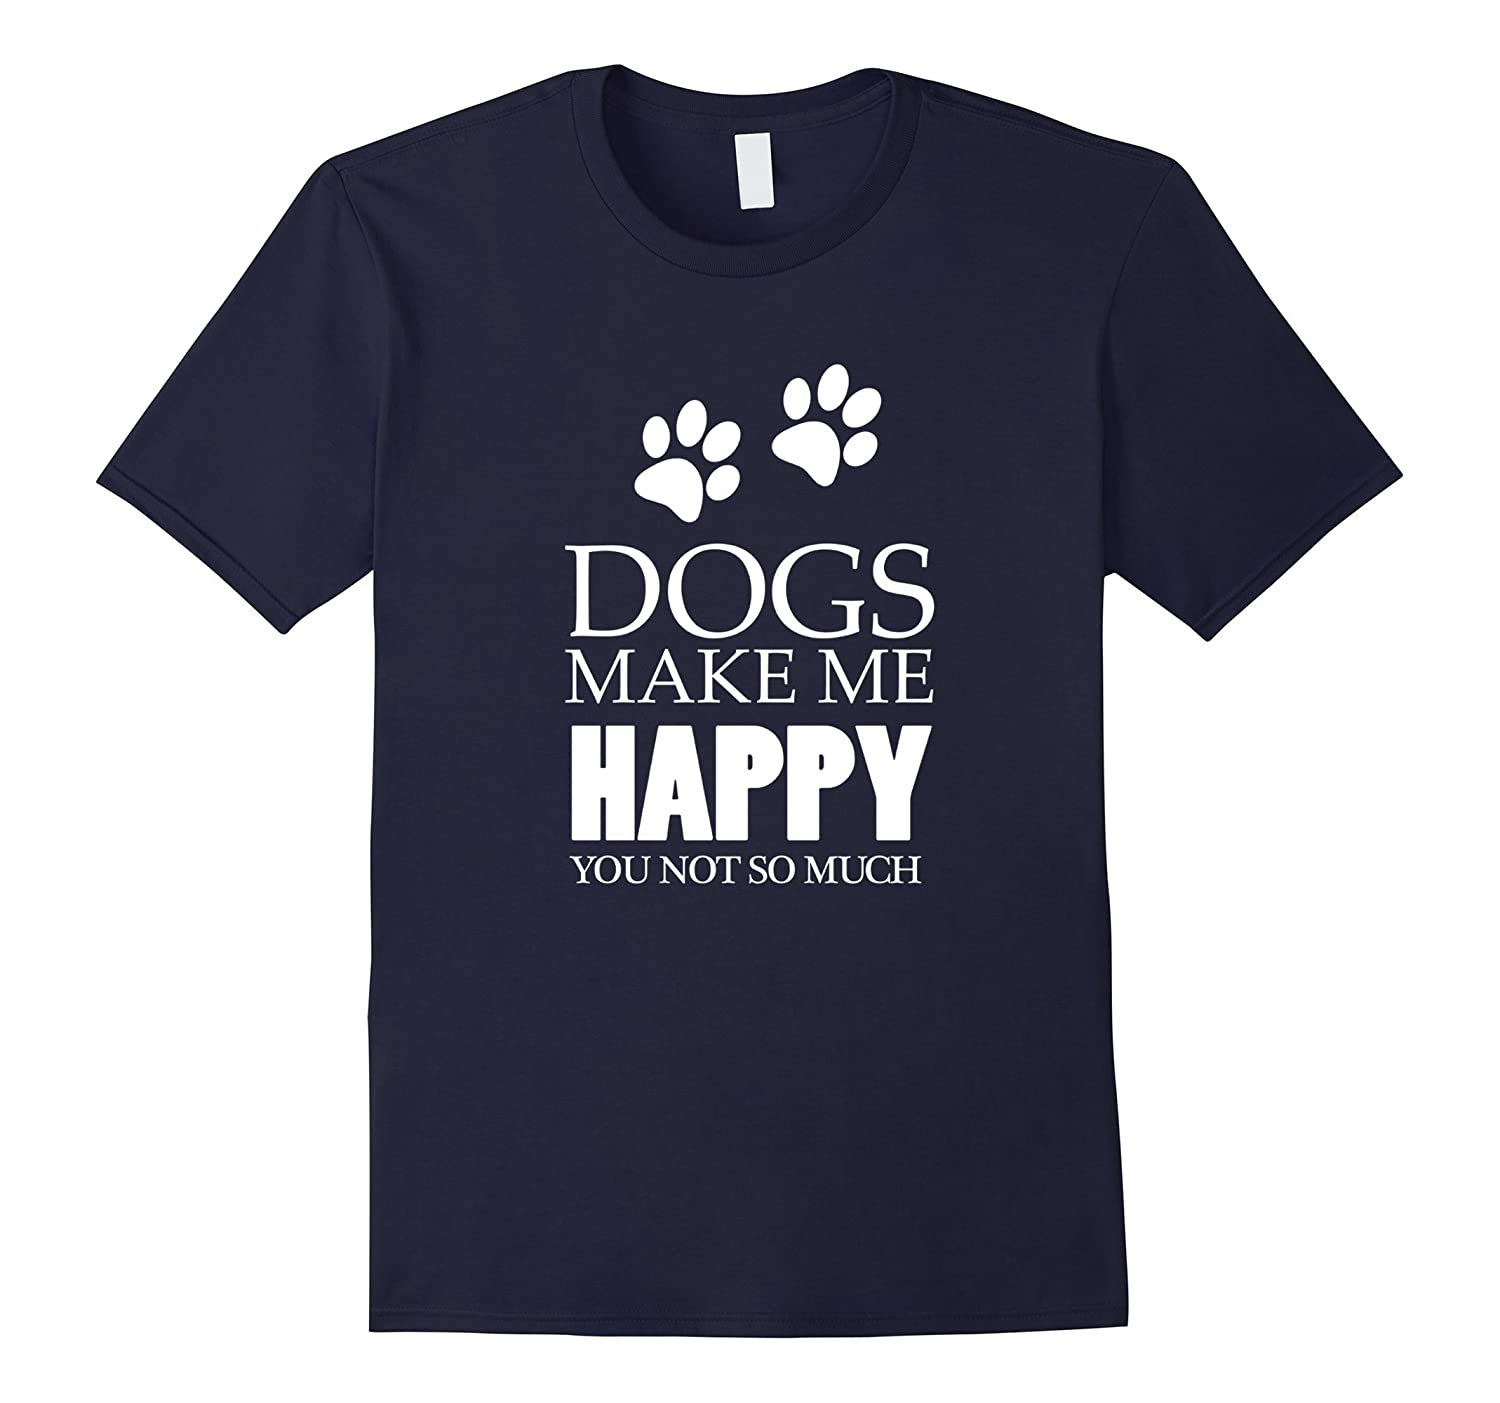 Dogs Make Me Happy You Not So Much T-Shirt - I Love Dogs T-Shirt-BN